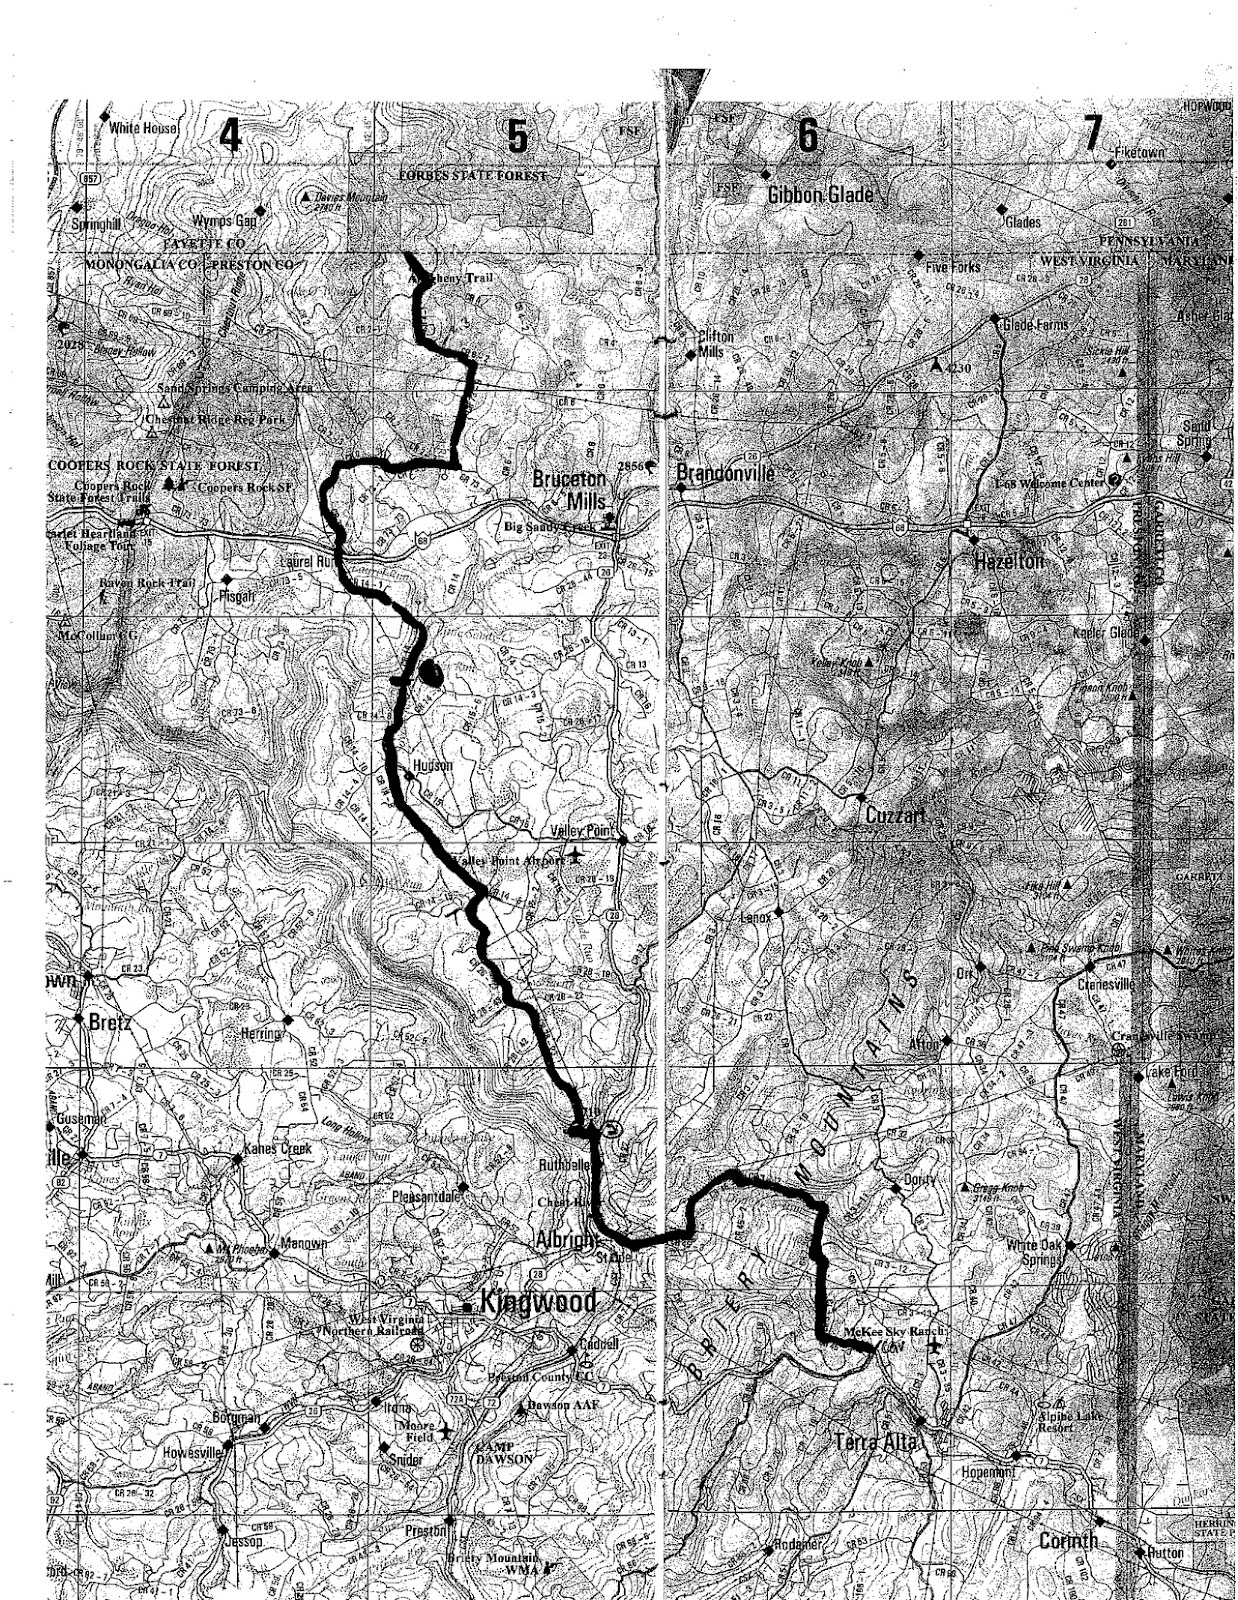 this is an overview map of the first 32 miles of the allegheny trail heading north to south